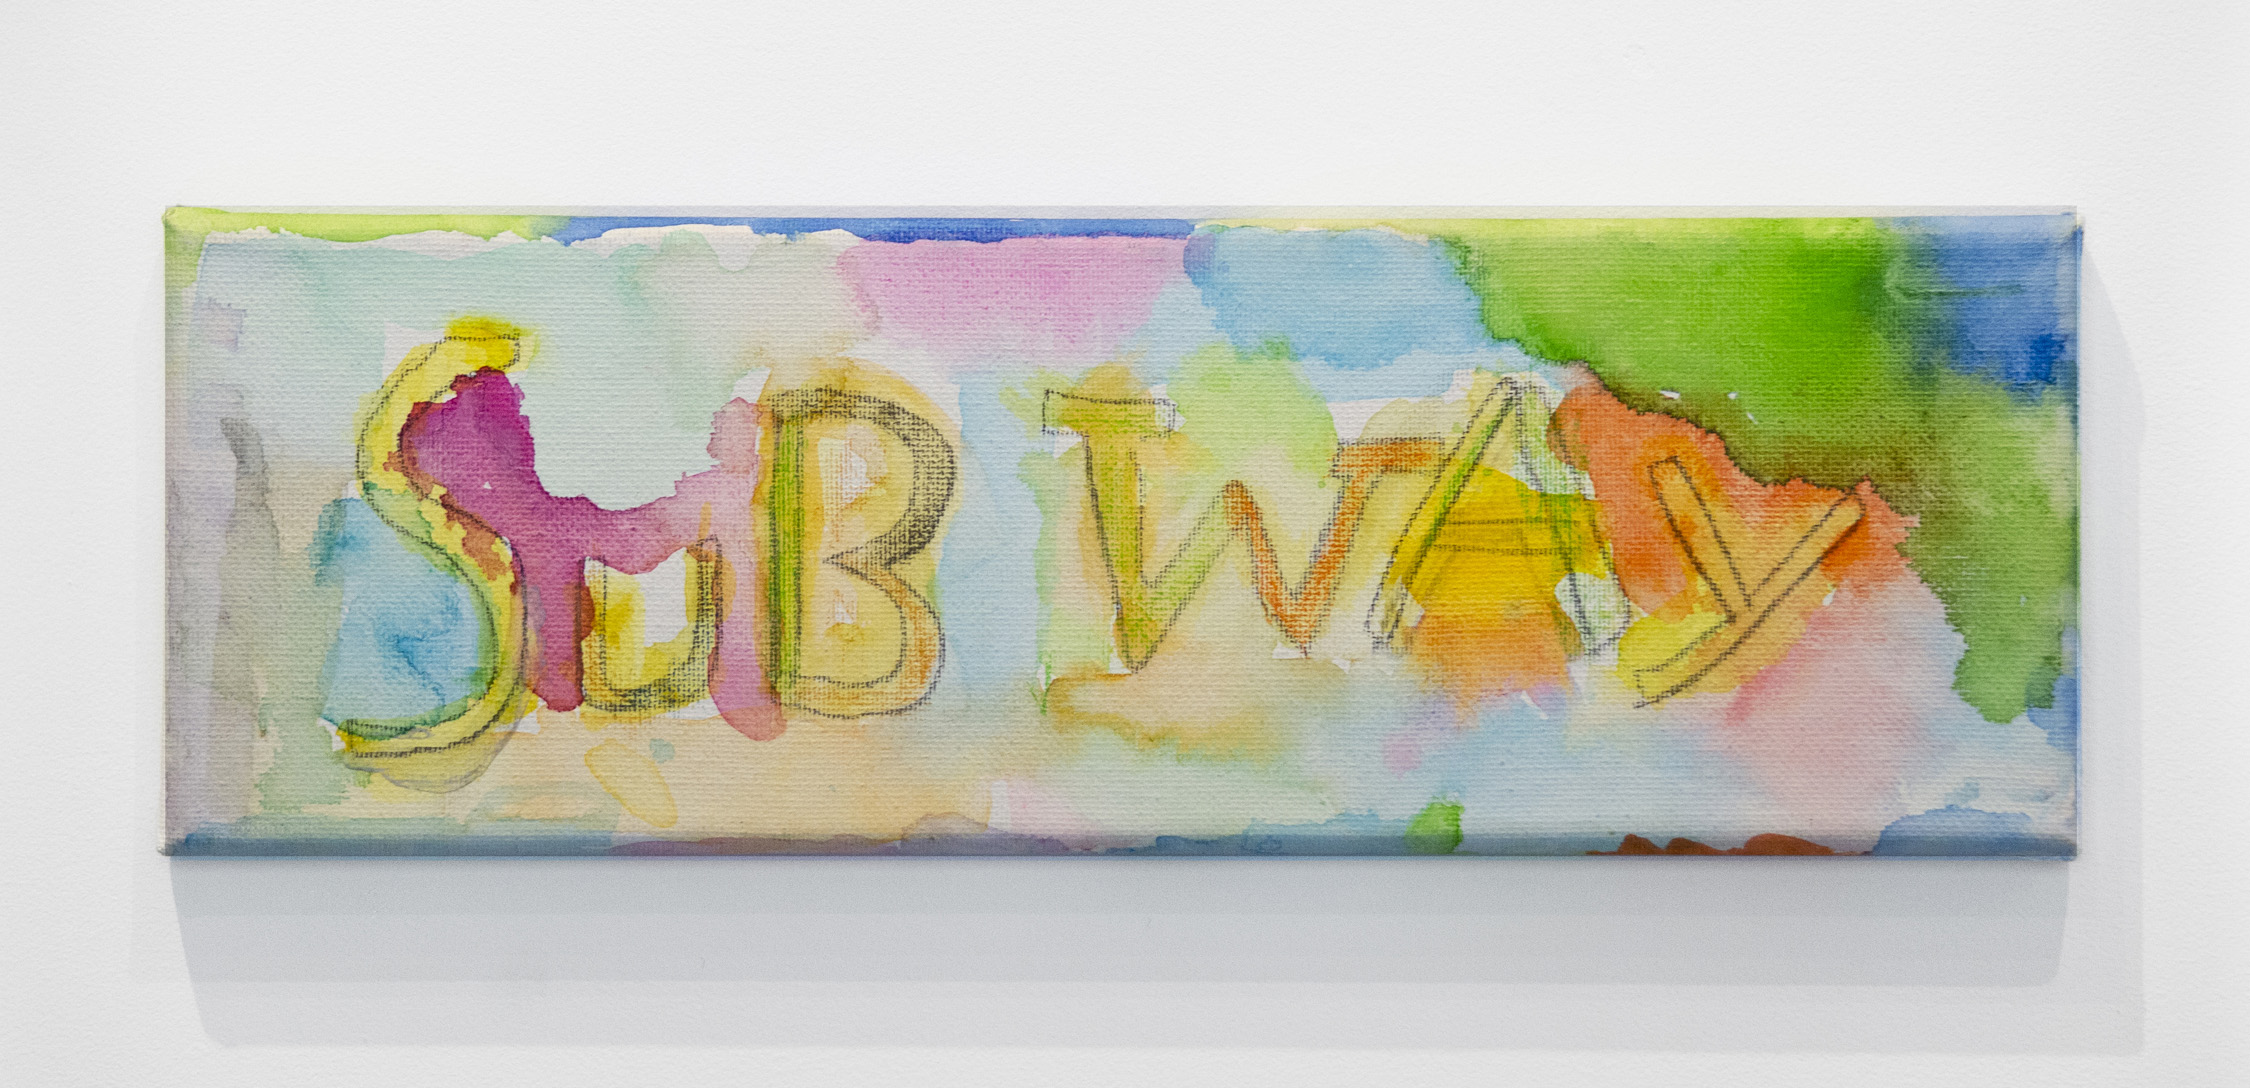 Hudson DeNike Palmer   Subway , 2019 Watercolor and pencil on canvas 4 x 12 inches (10.16 x 30.5 cm)  Starting bid: $20